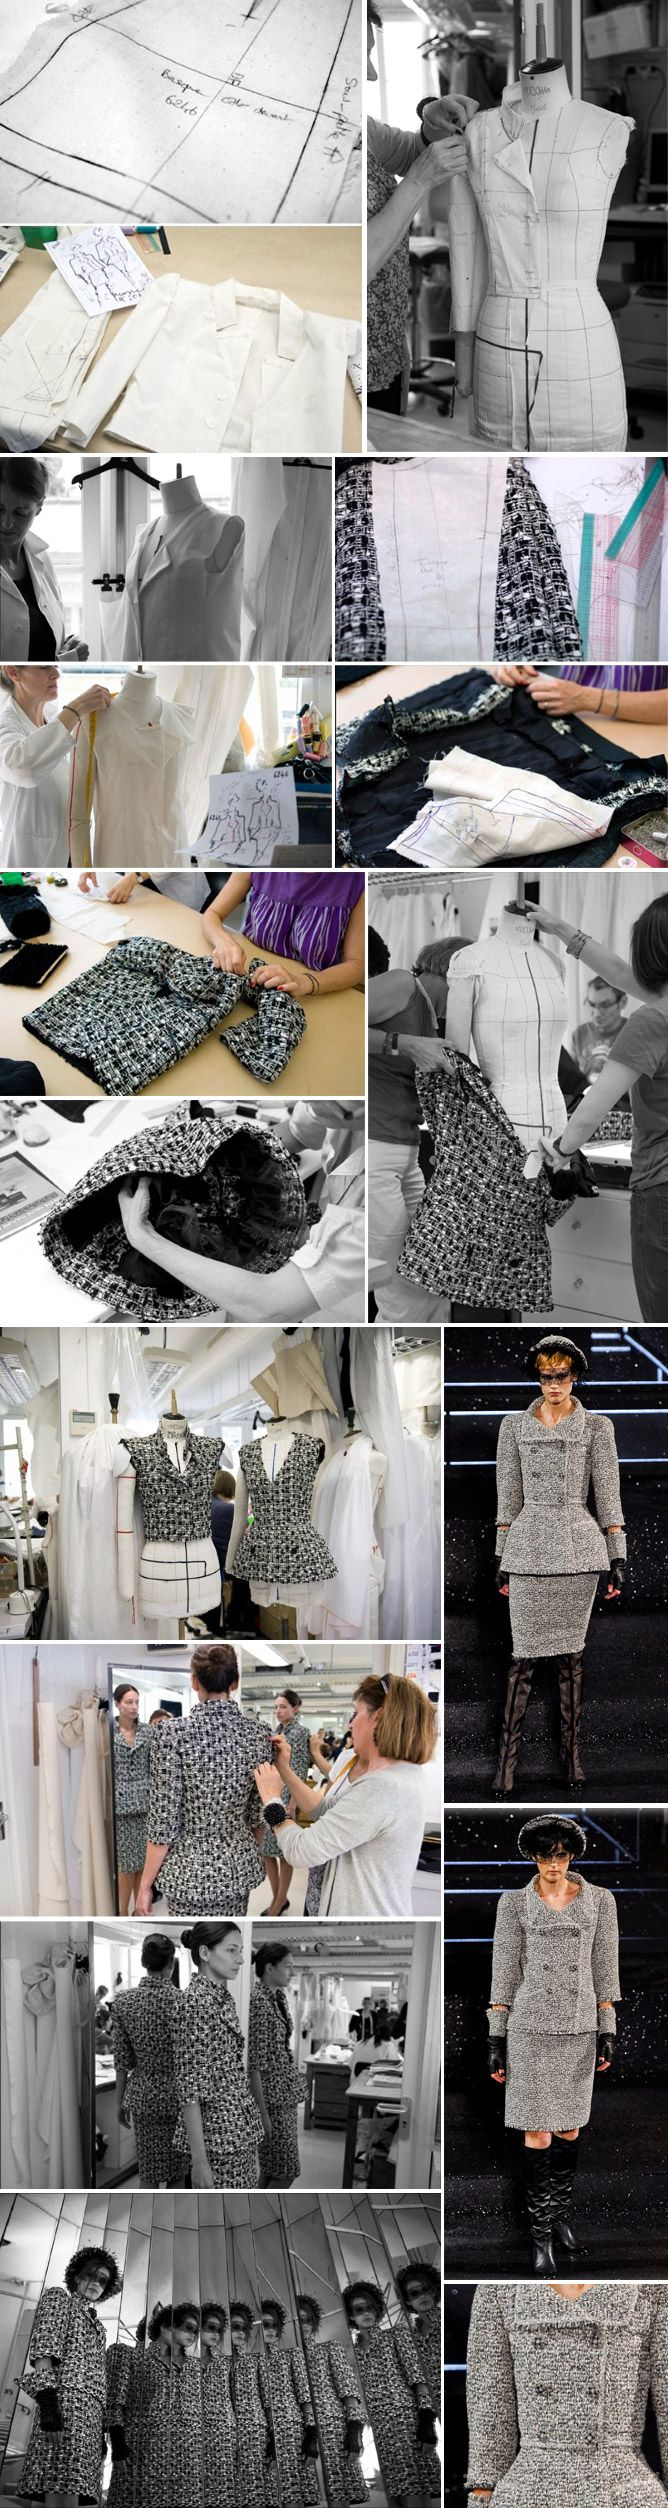 Fashion in the making, from design to the catwalk - dressmaking behind the scenes; fashion design studio; fashion atelier // Chanel haute couture